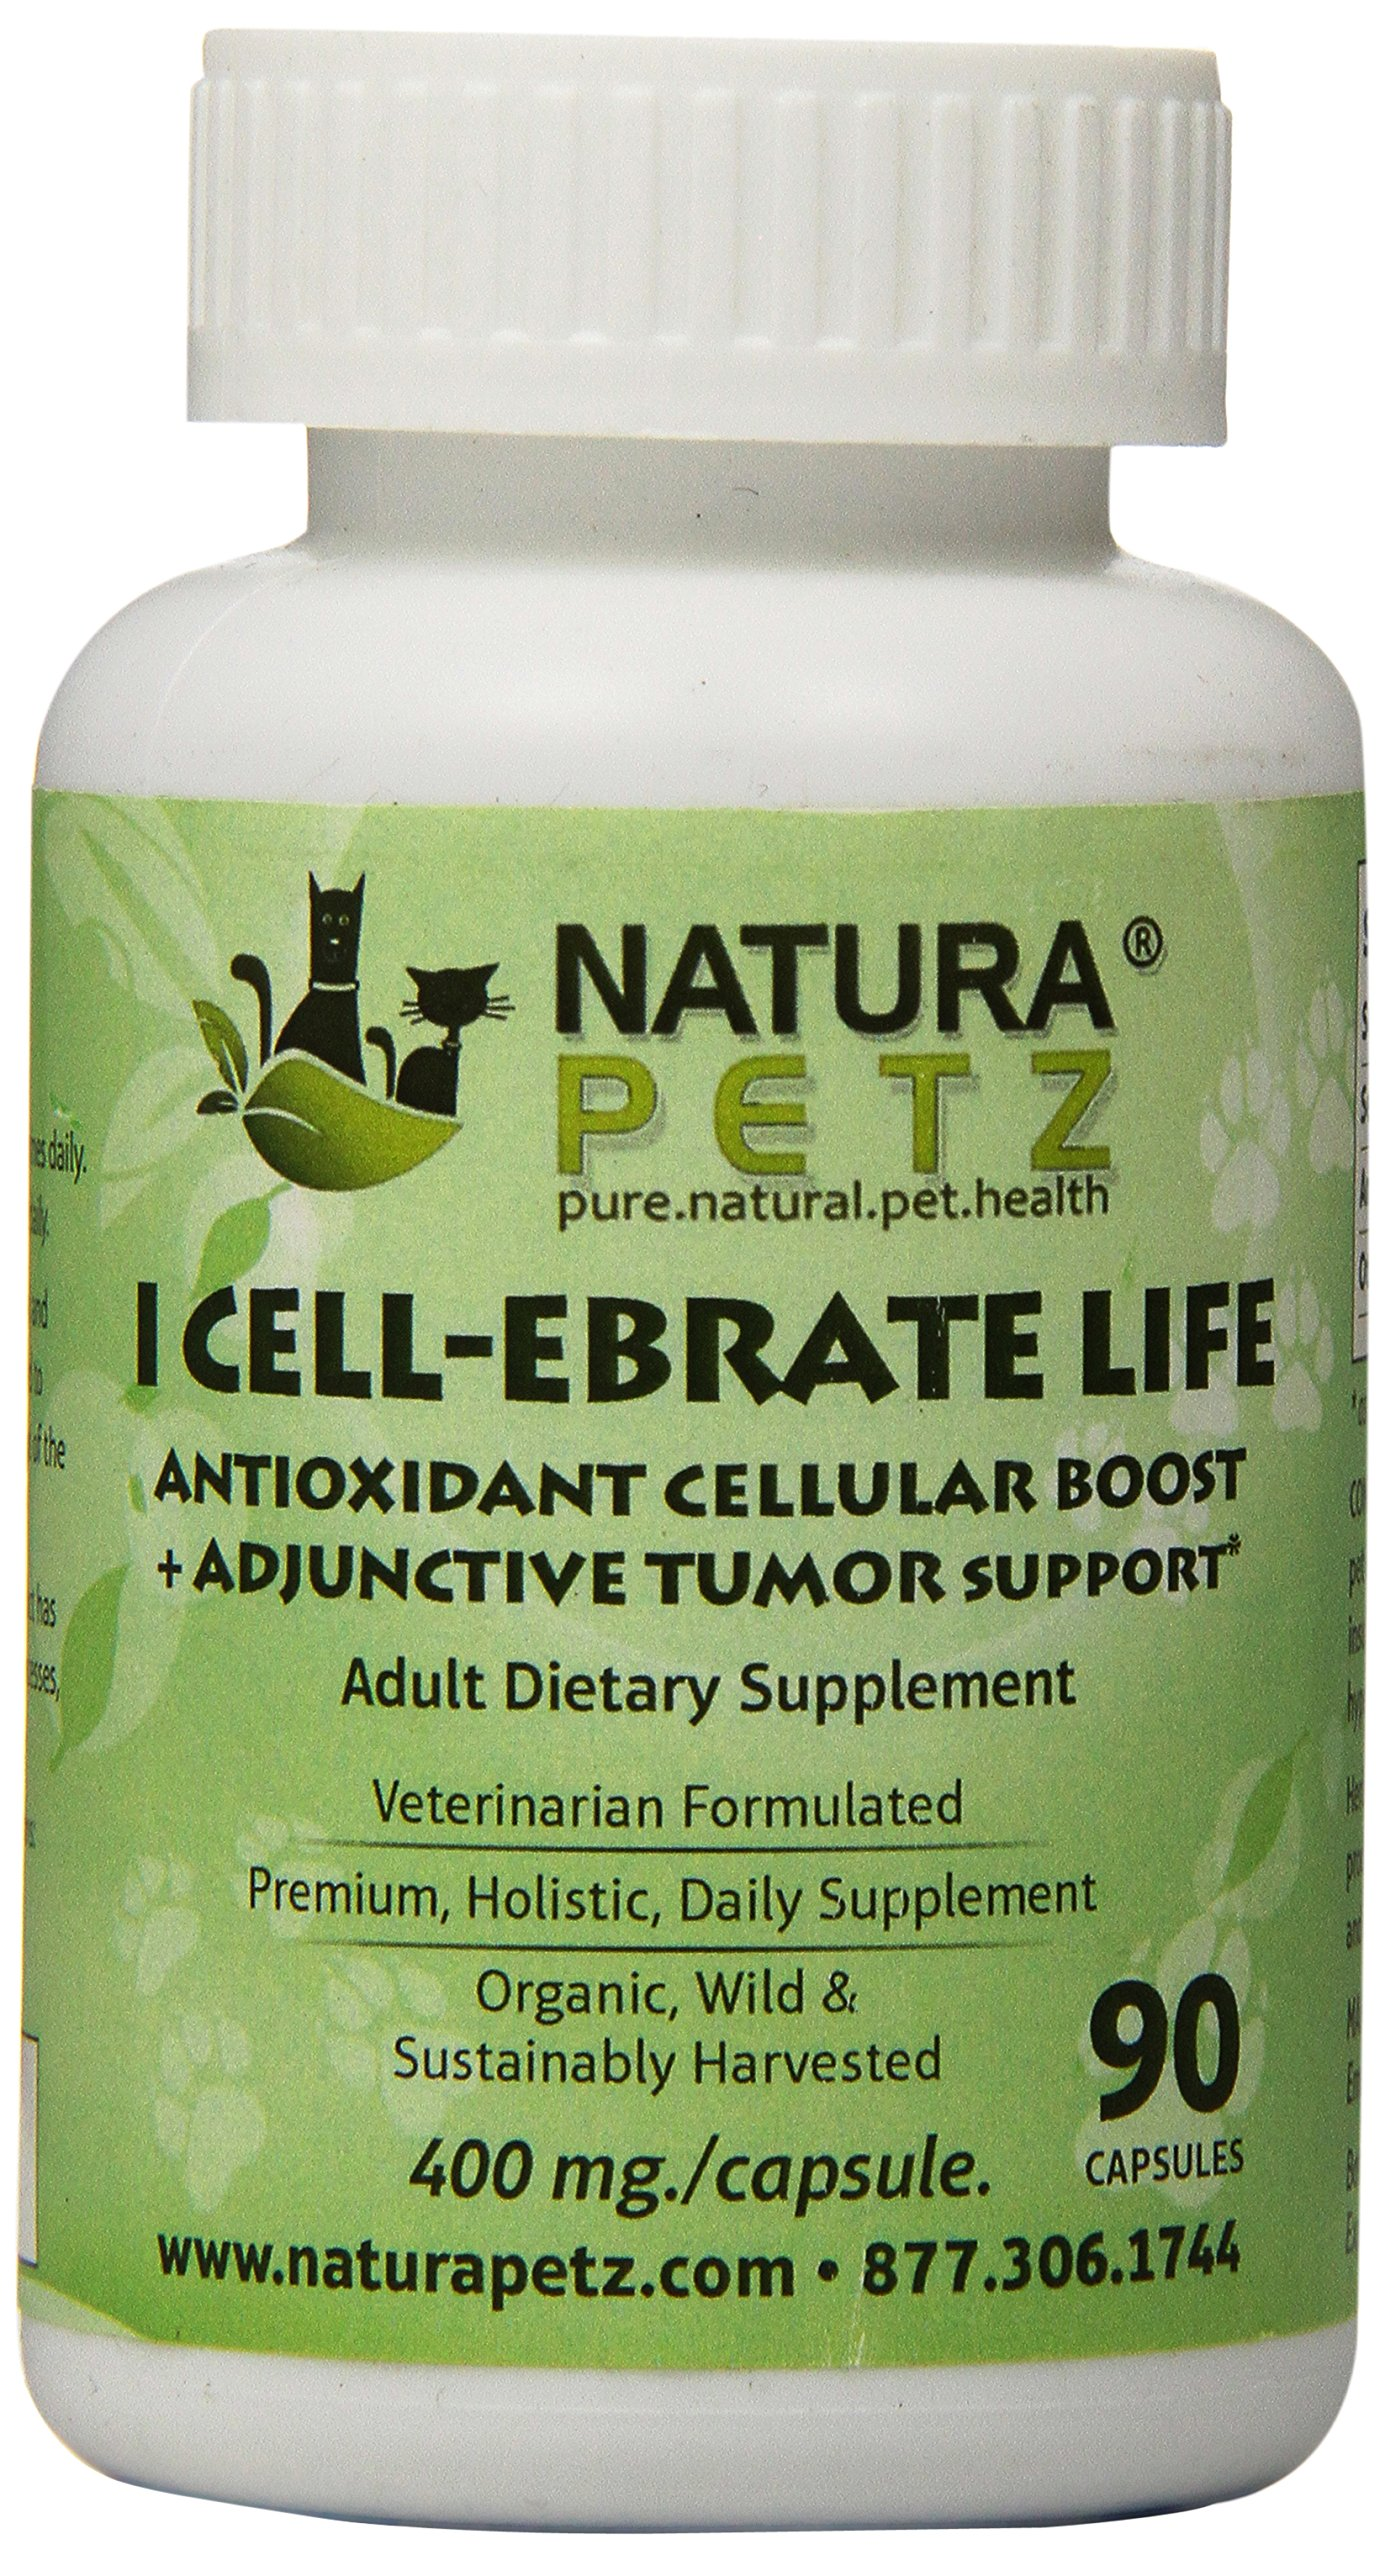 Natura Petz I Cell-Ebrate Life Antioxidant Cellular Boost, Adjunctive Tumor Support for Adult Pets, 90 Capsules, 400mg Per Capsule by Natura Petz